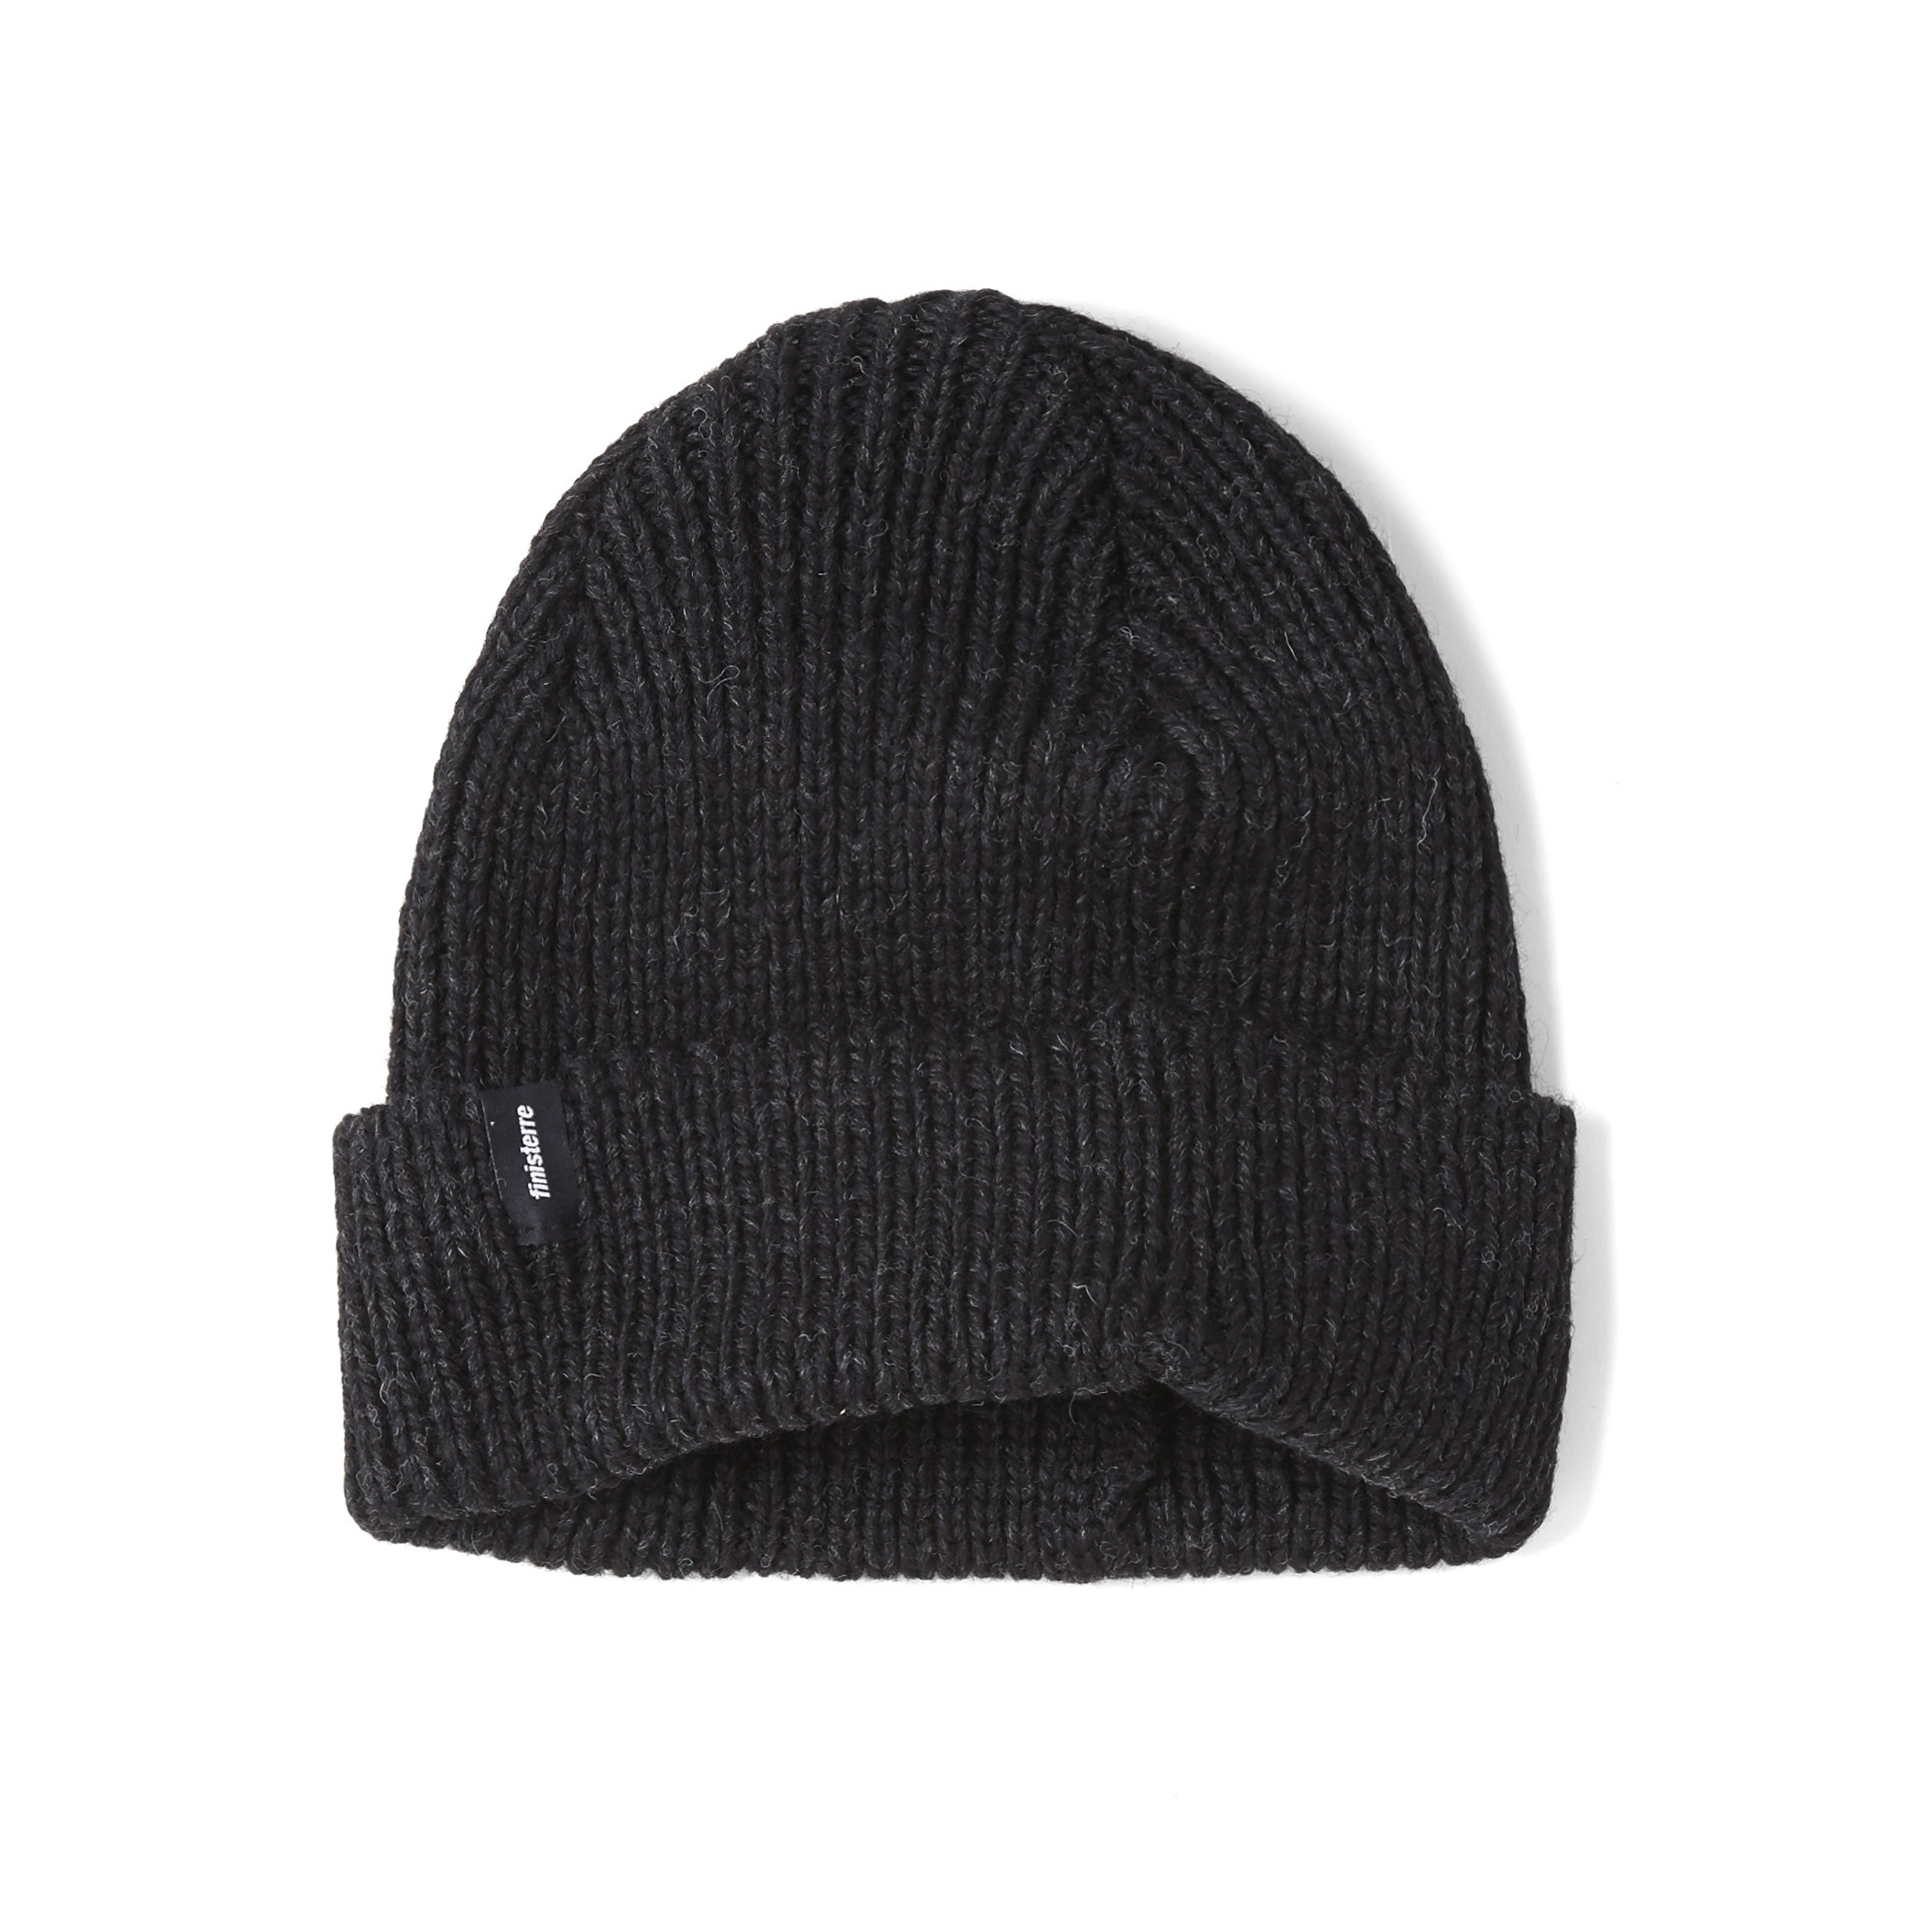 vb558688_tumet_beanie_anthracite_u_static